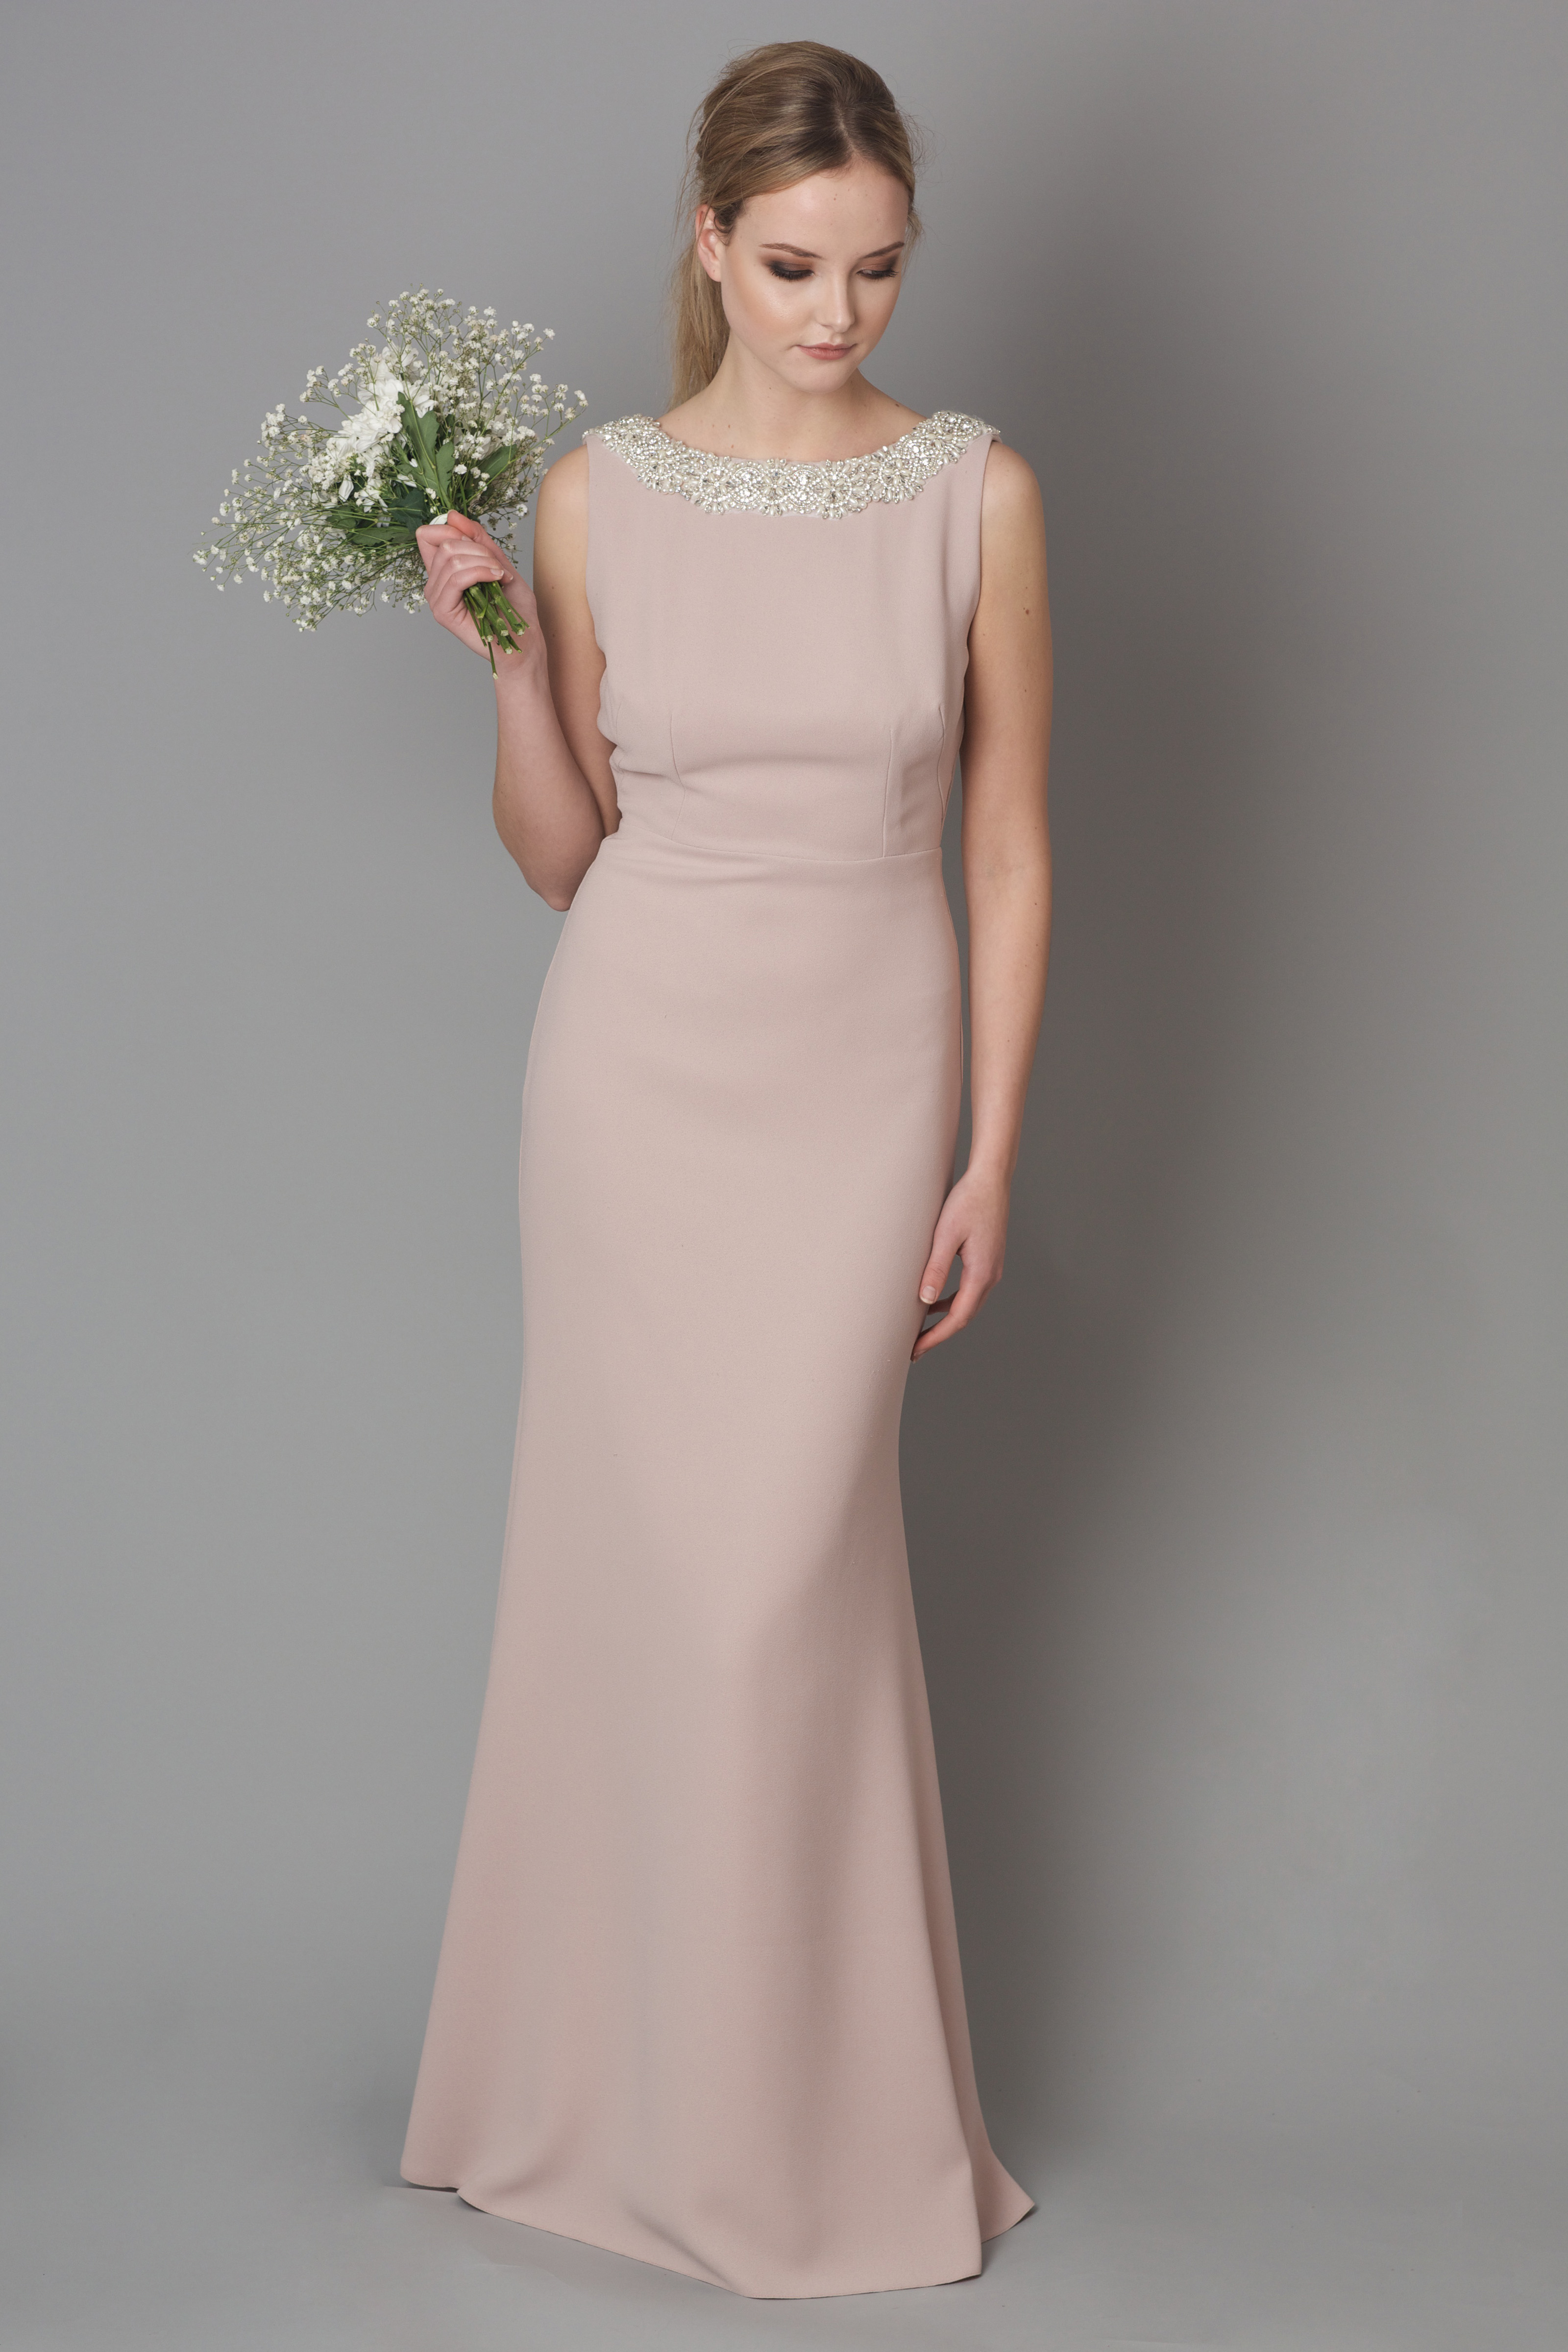 Dc1181 with heavy beading bridesmaid evening debs dresses from dc1181 with heavy beading 38000 all dresscode bridesmaid dresses ombrellifo Image collections